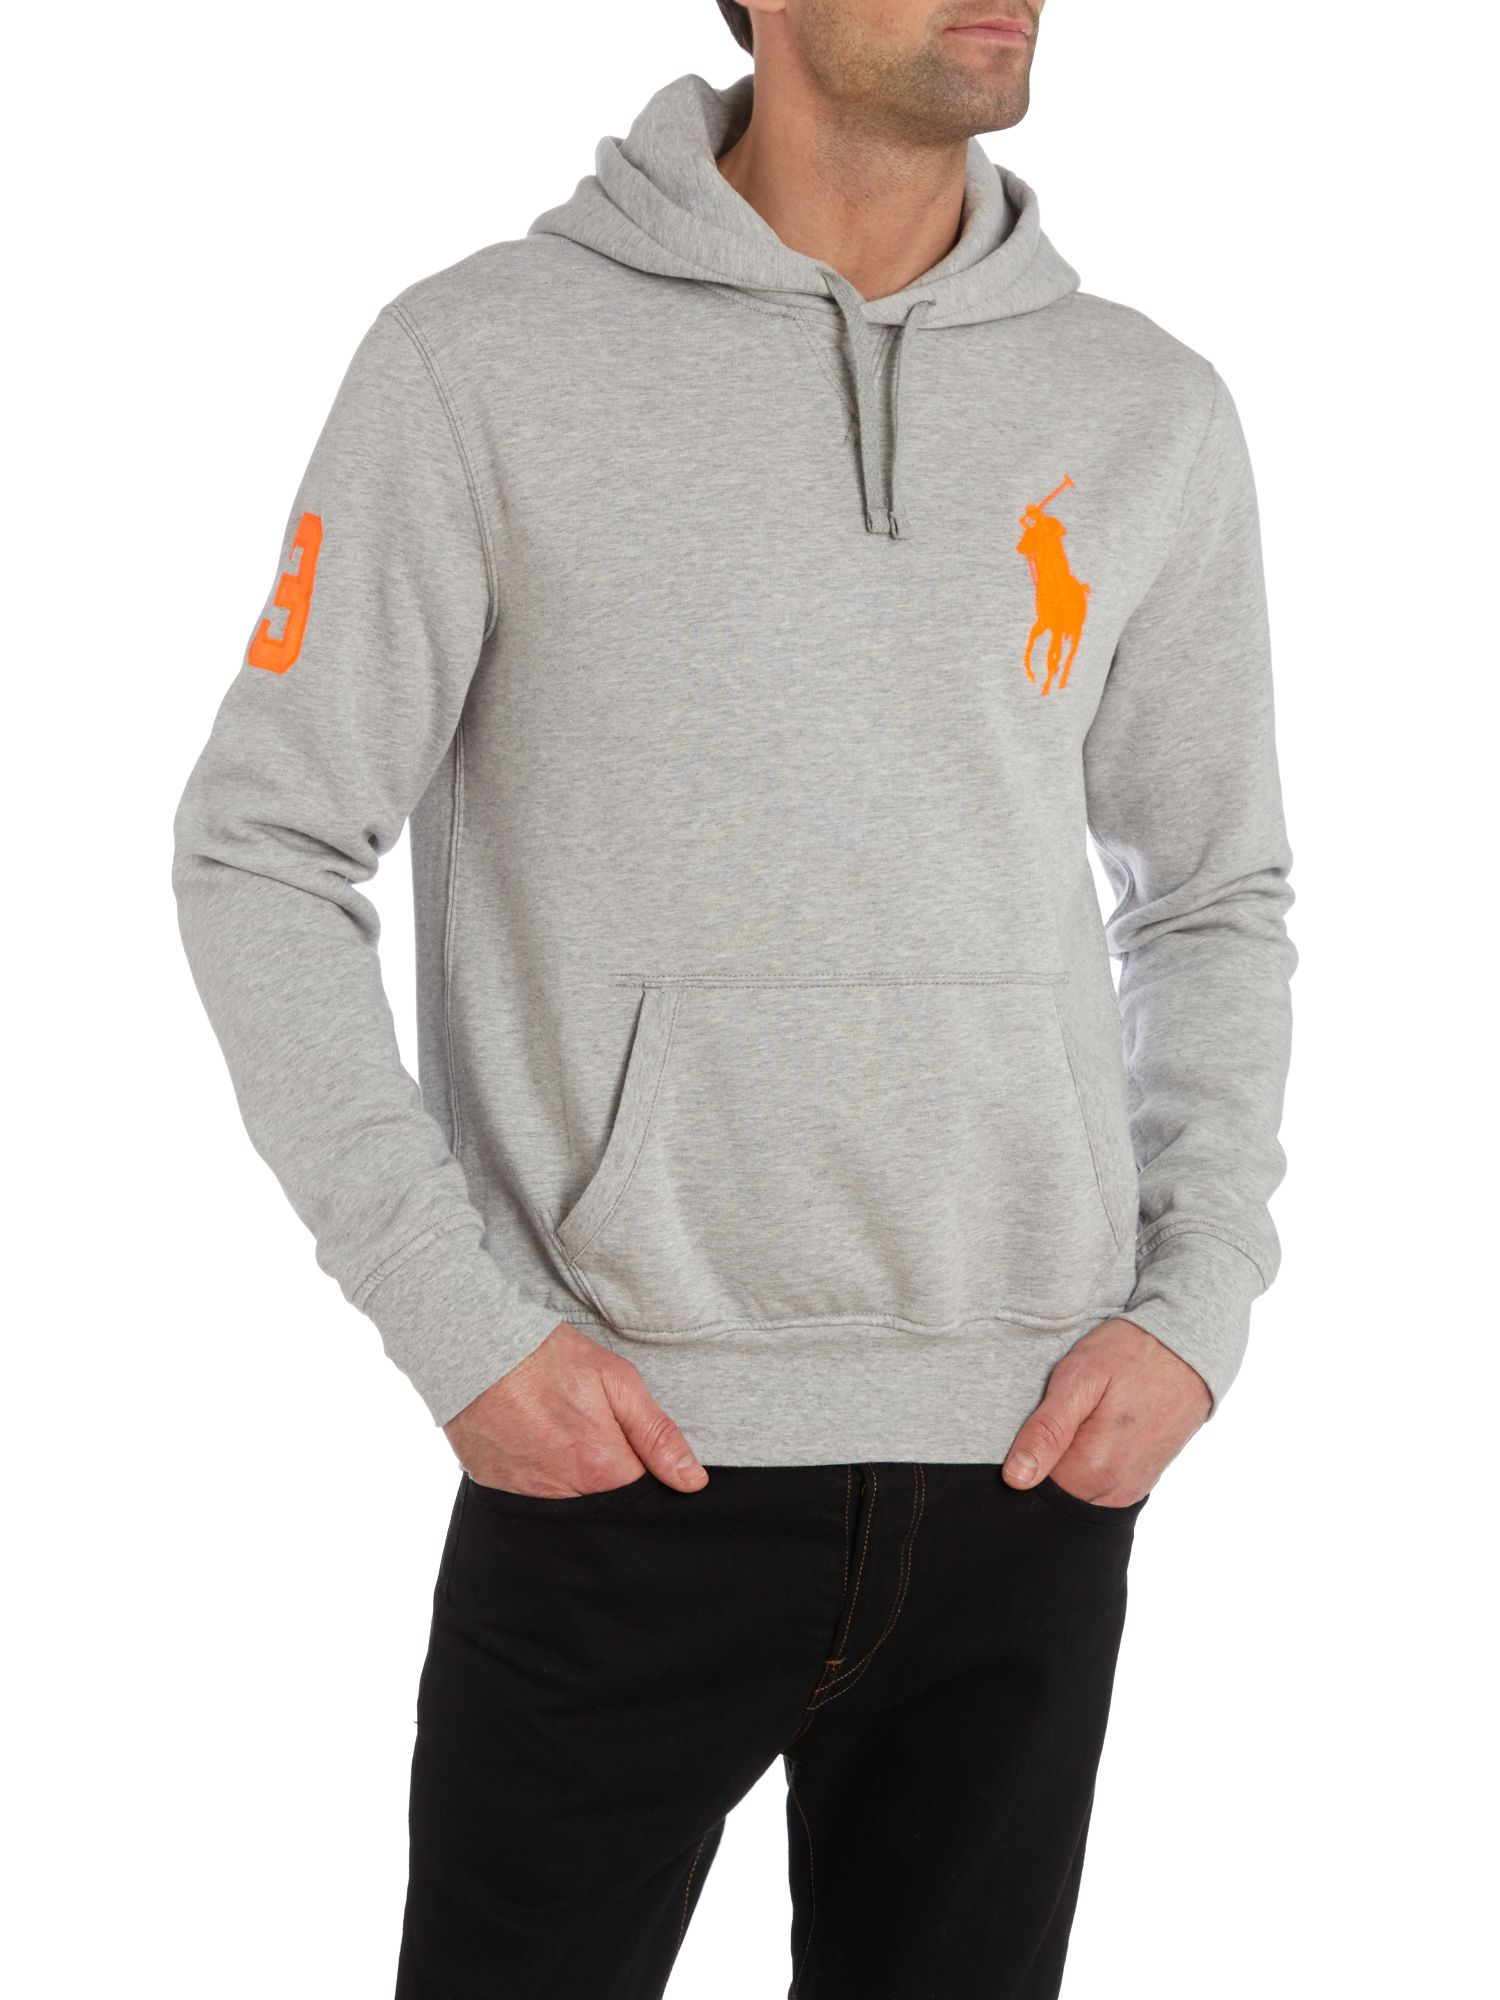 polo ralph lauren big pony player fleece hooded sweatshirt in gray for men lyst. Black Bedroom Furniture Sets. Home Design Ideas